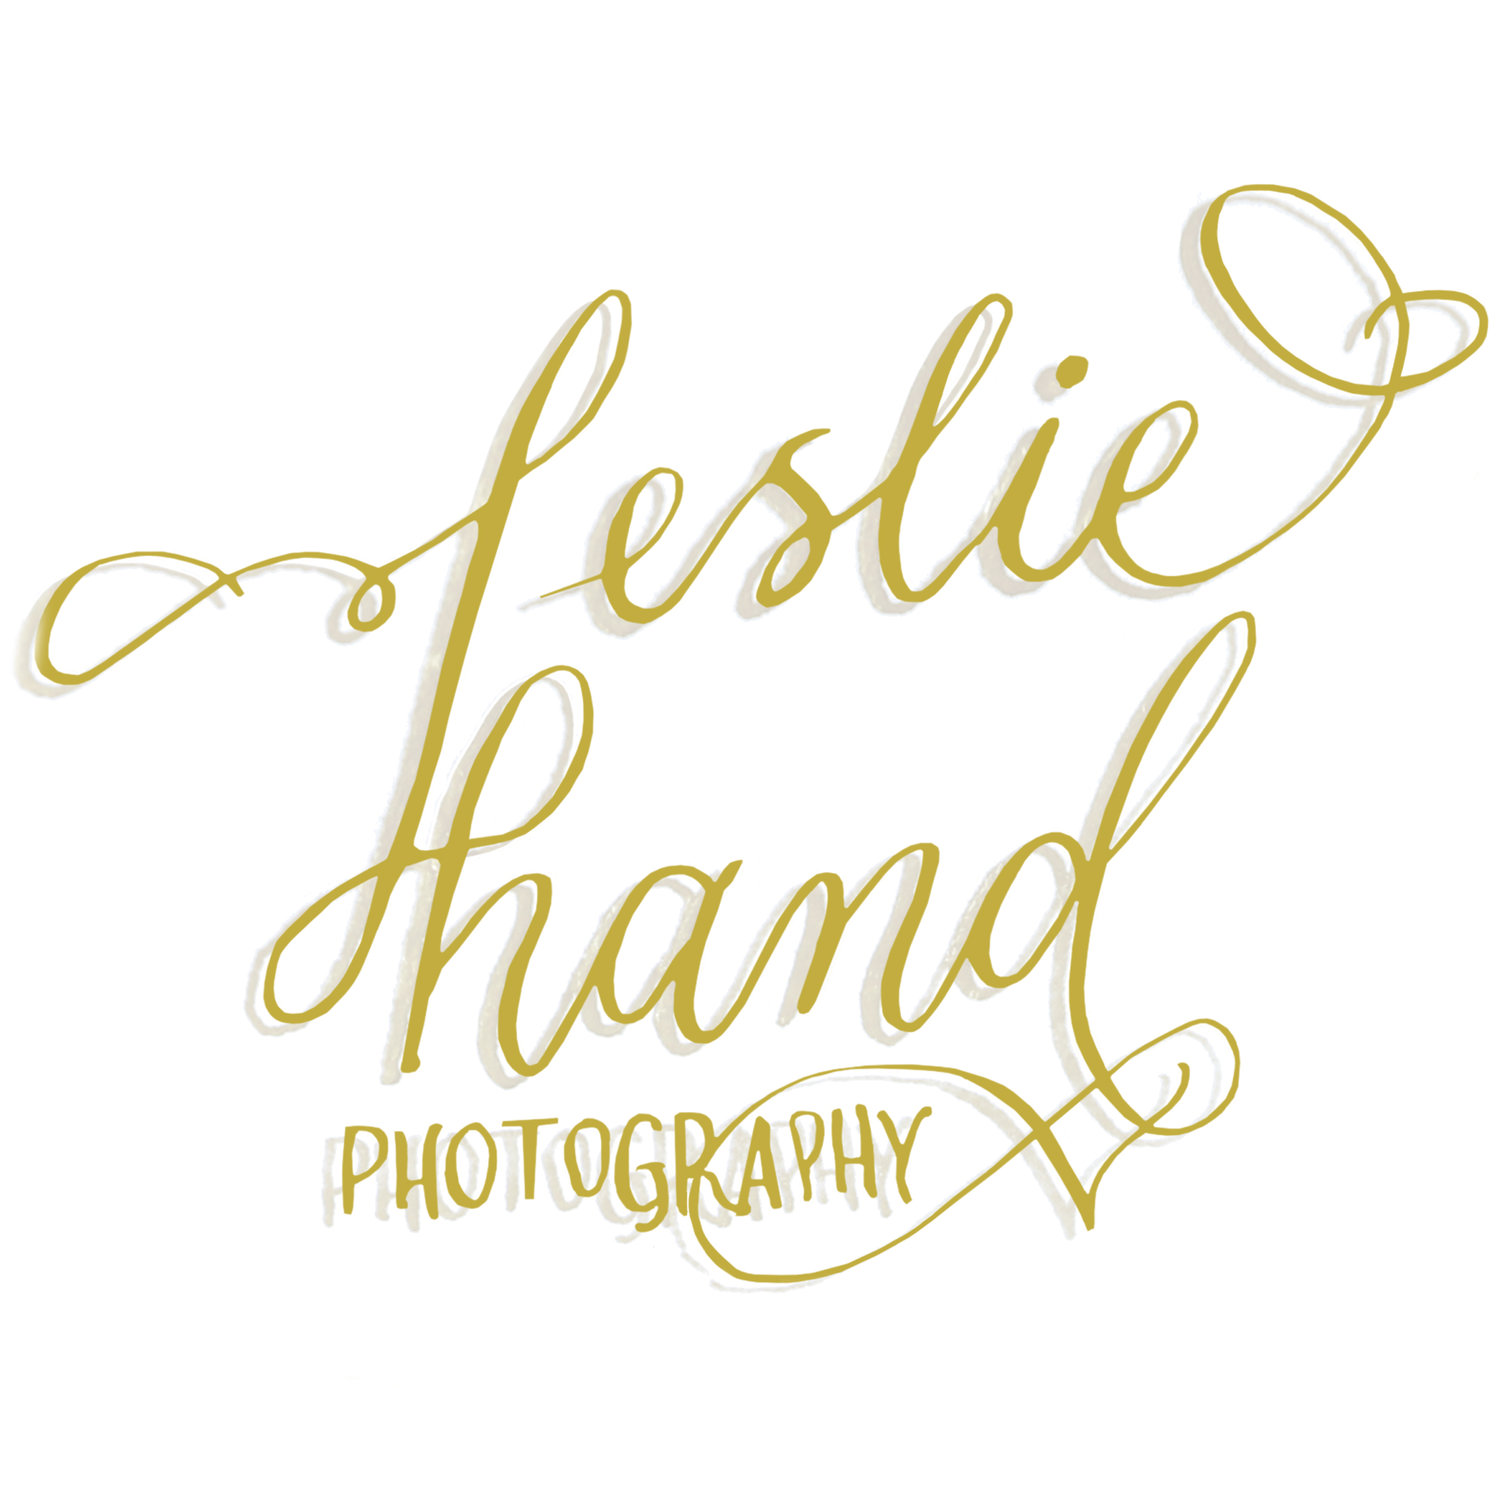 Leslie Hand Photography